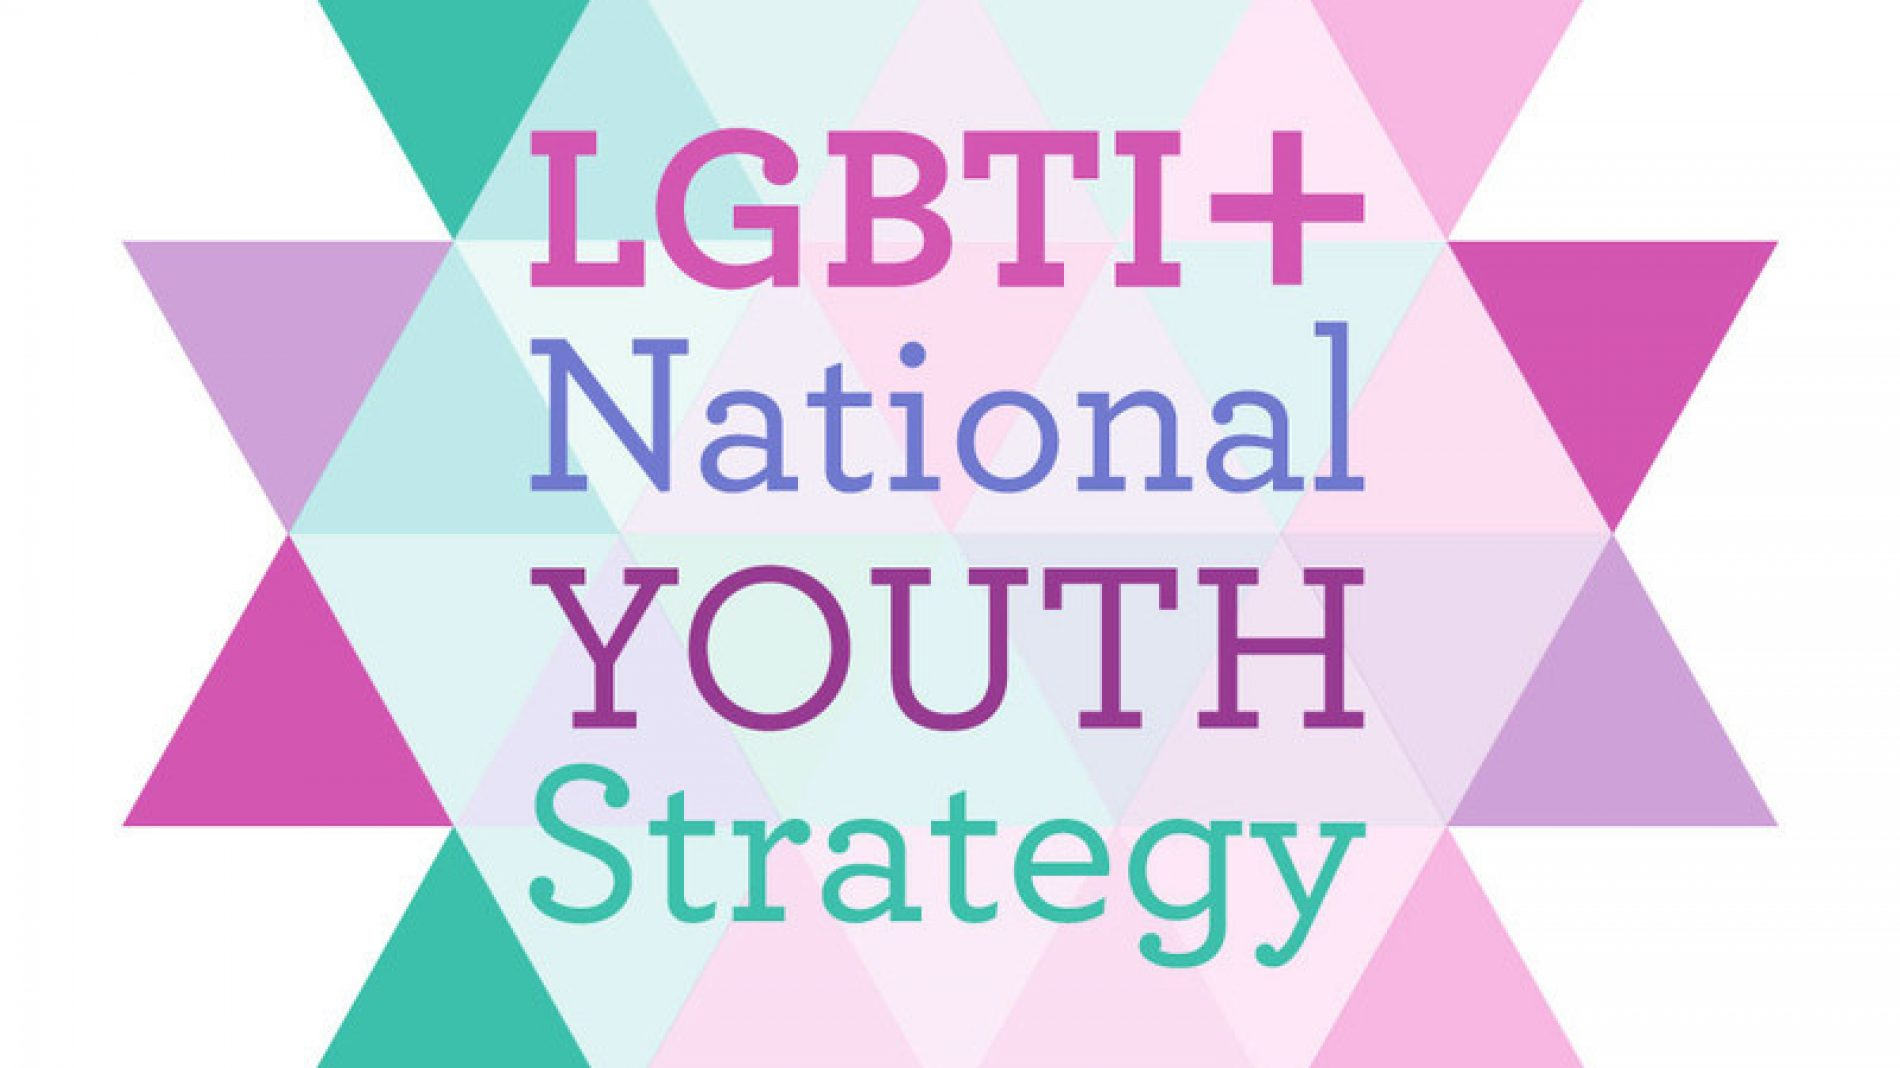 The logo of the LGBTI+ National Youth Strategy